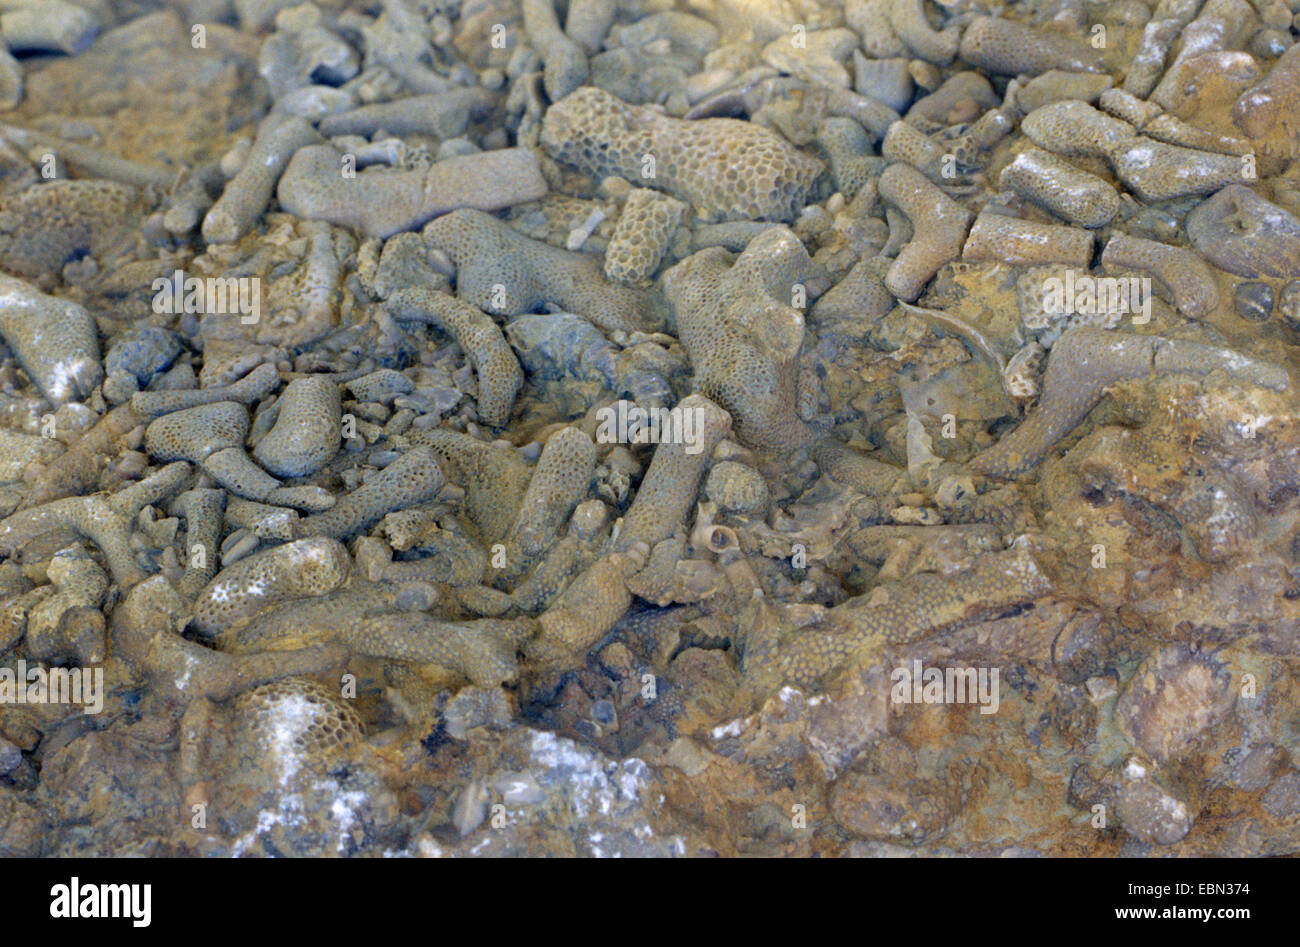 brachiopods and sea lilies - Stock Image